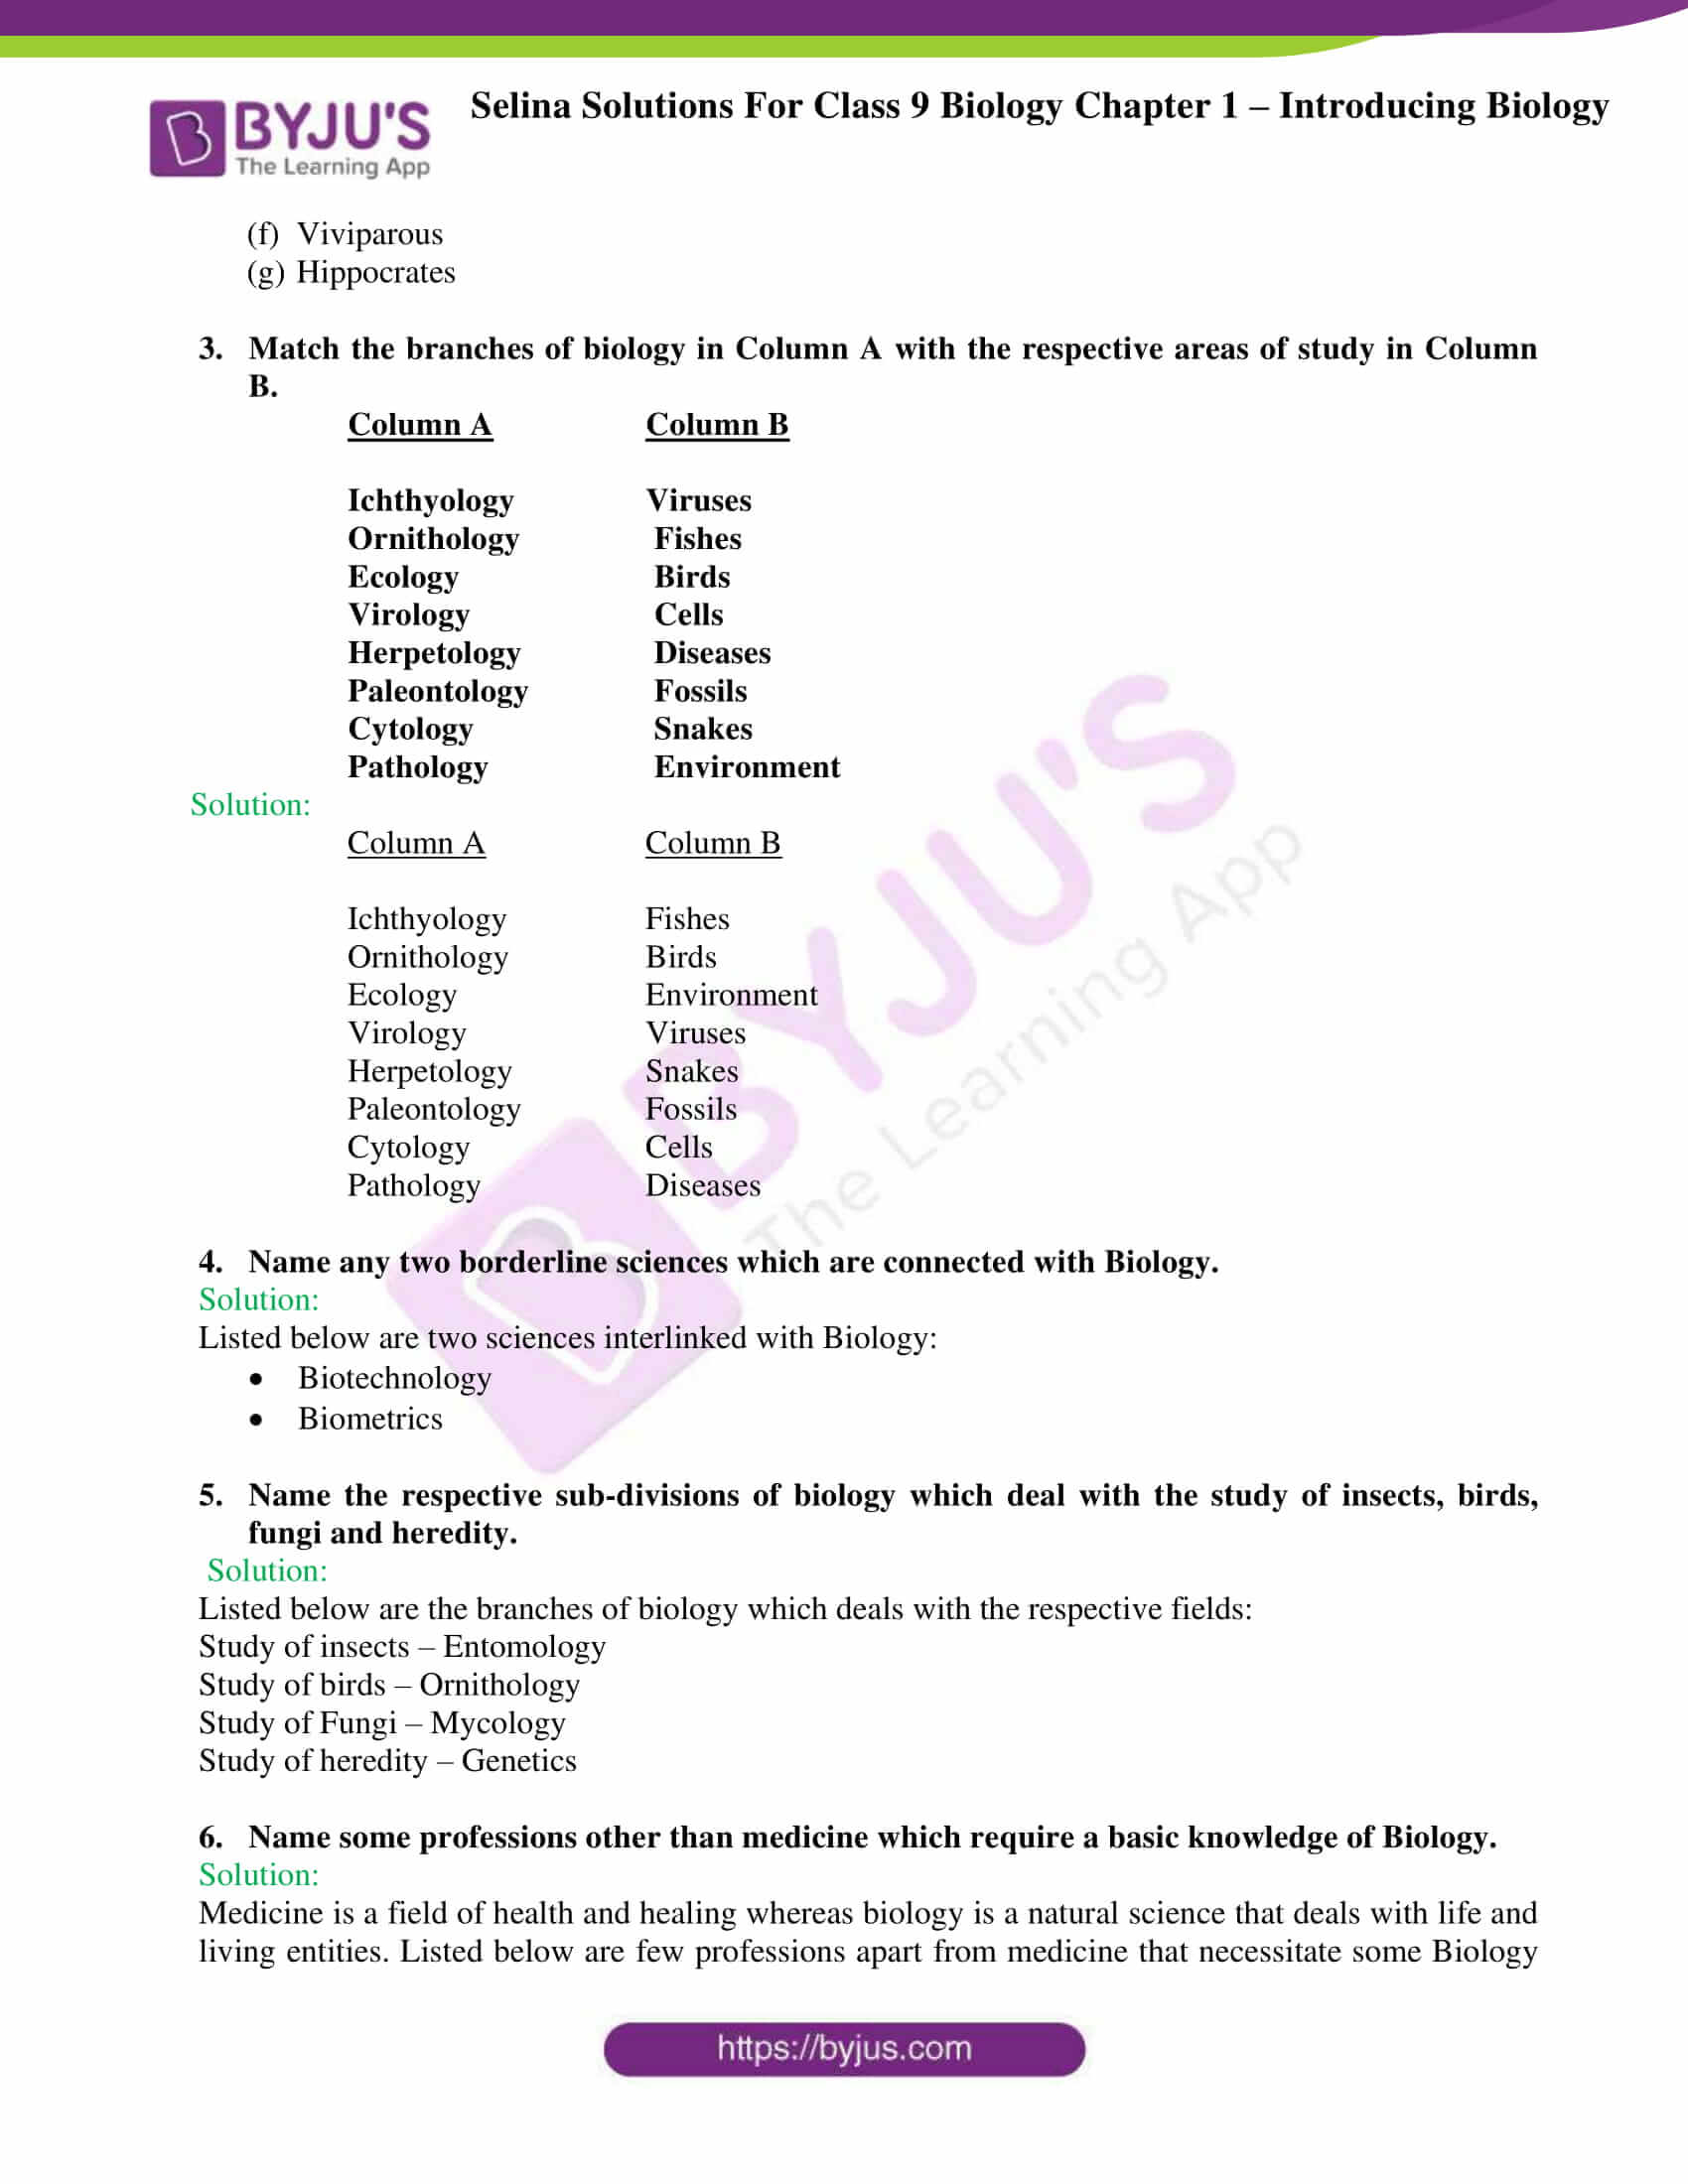 Selina Solutions For Class 9 Biology Chapter 1 Introducing Biology part 3